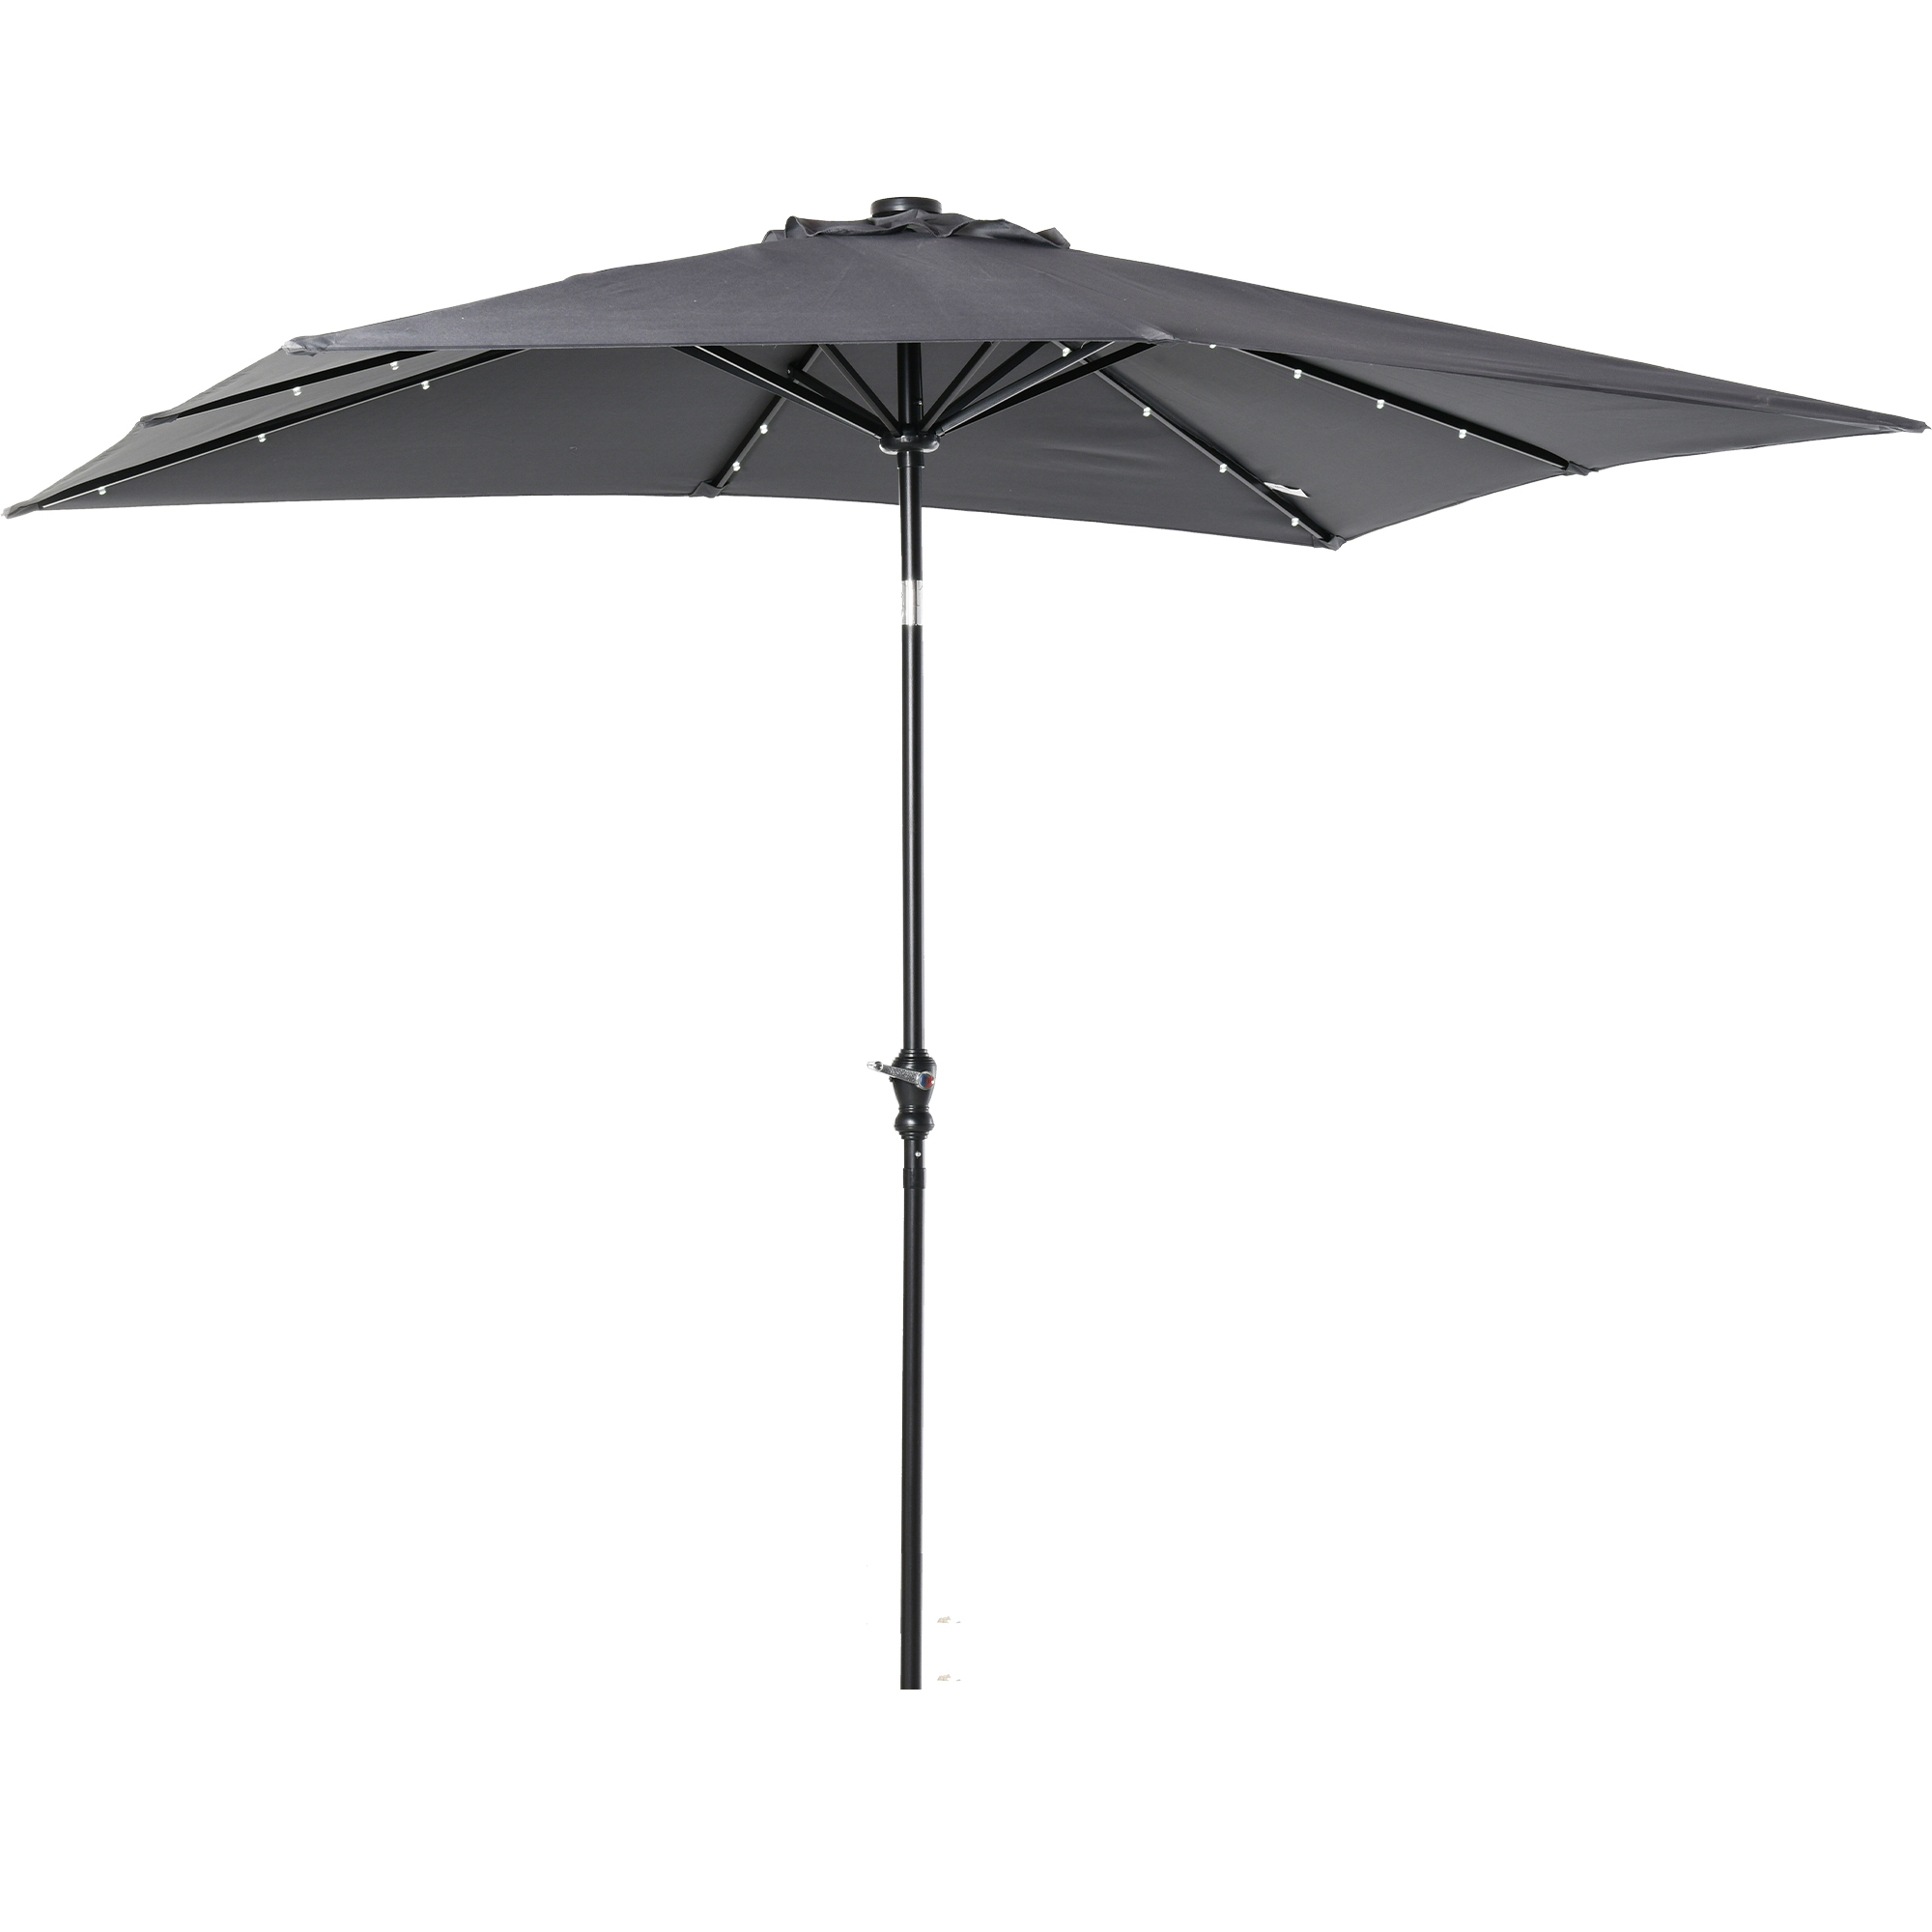 Parasol lumineux LED rectangulaire inclinable dim. 2,68L x 2,05l x 2,48H m